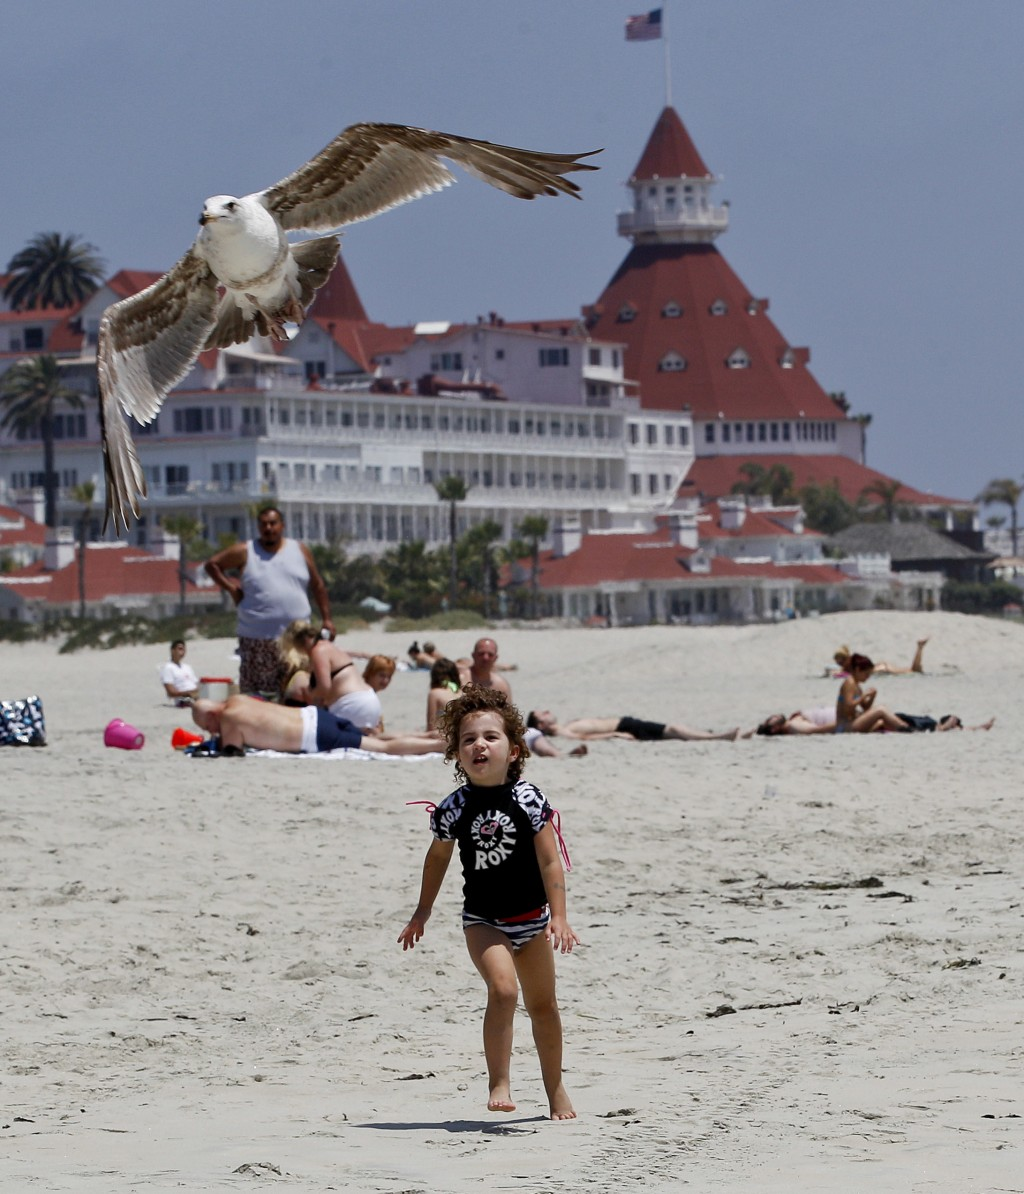 FILE - In this May 22, 2012, file photo, a child chases a sea gull on Coronado Beach in Coronado, Calif. Coronado Beach is No. 9 on the list of best b...